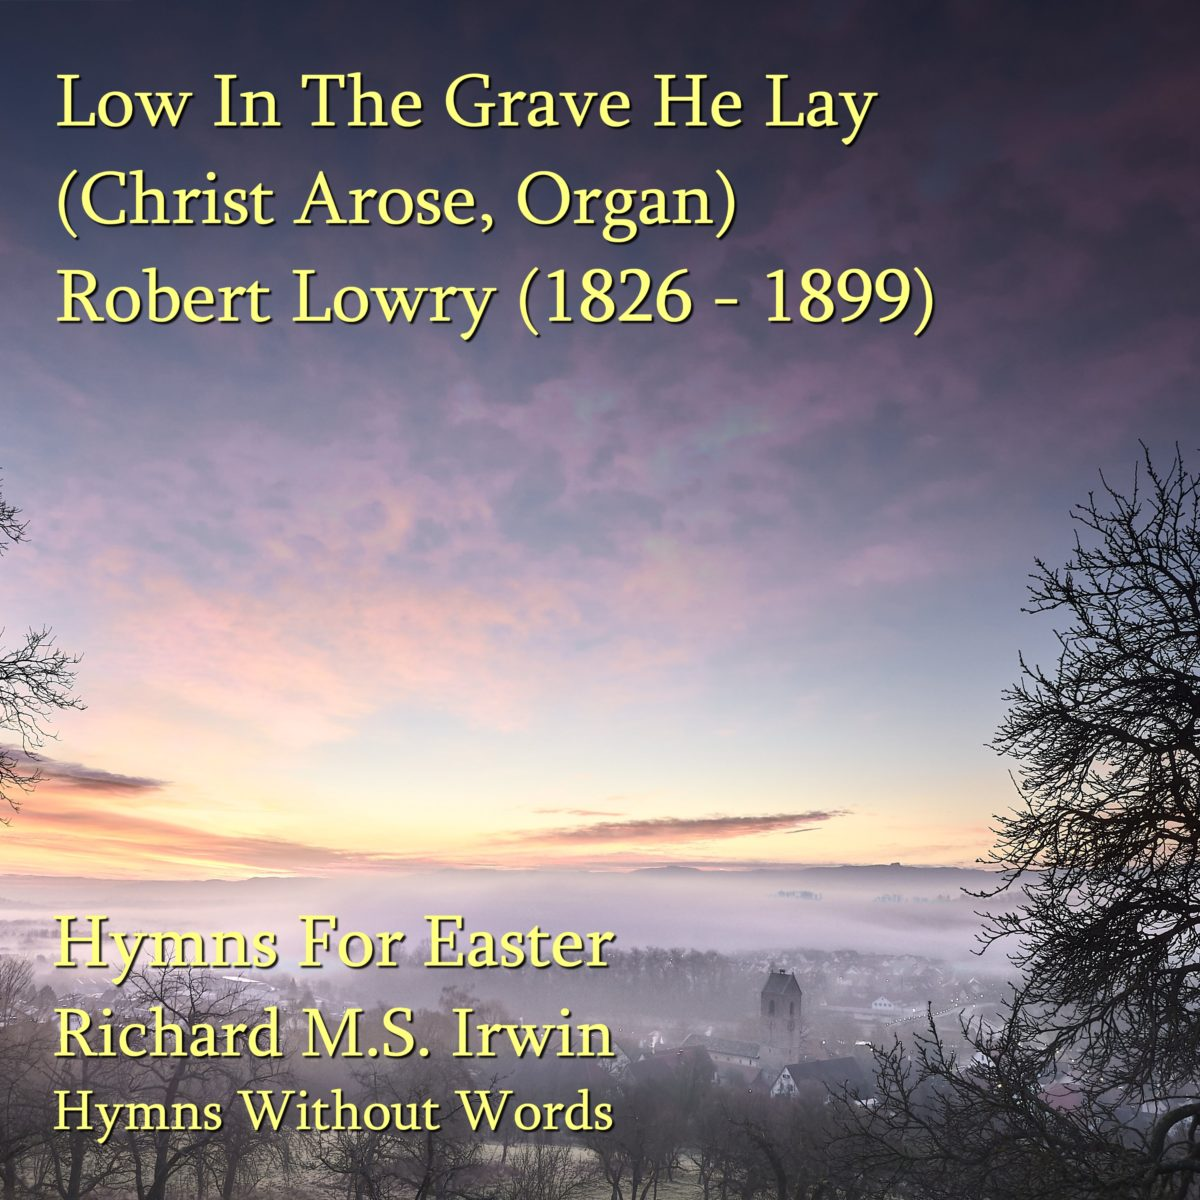 Low In The Grave He Lay (Christ Arose, Organ, 3 Verses)